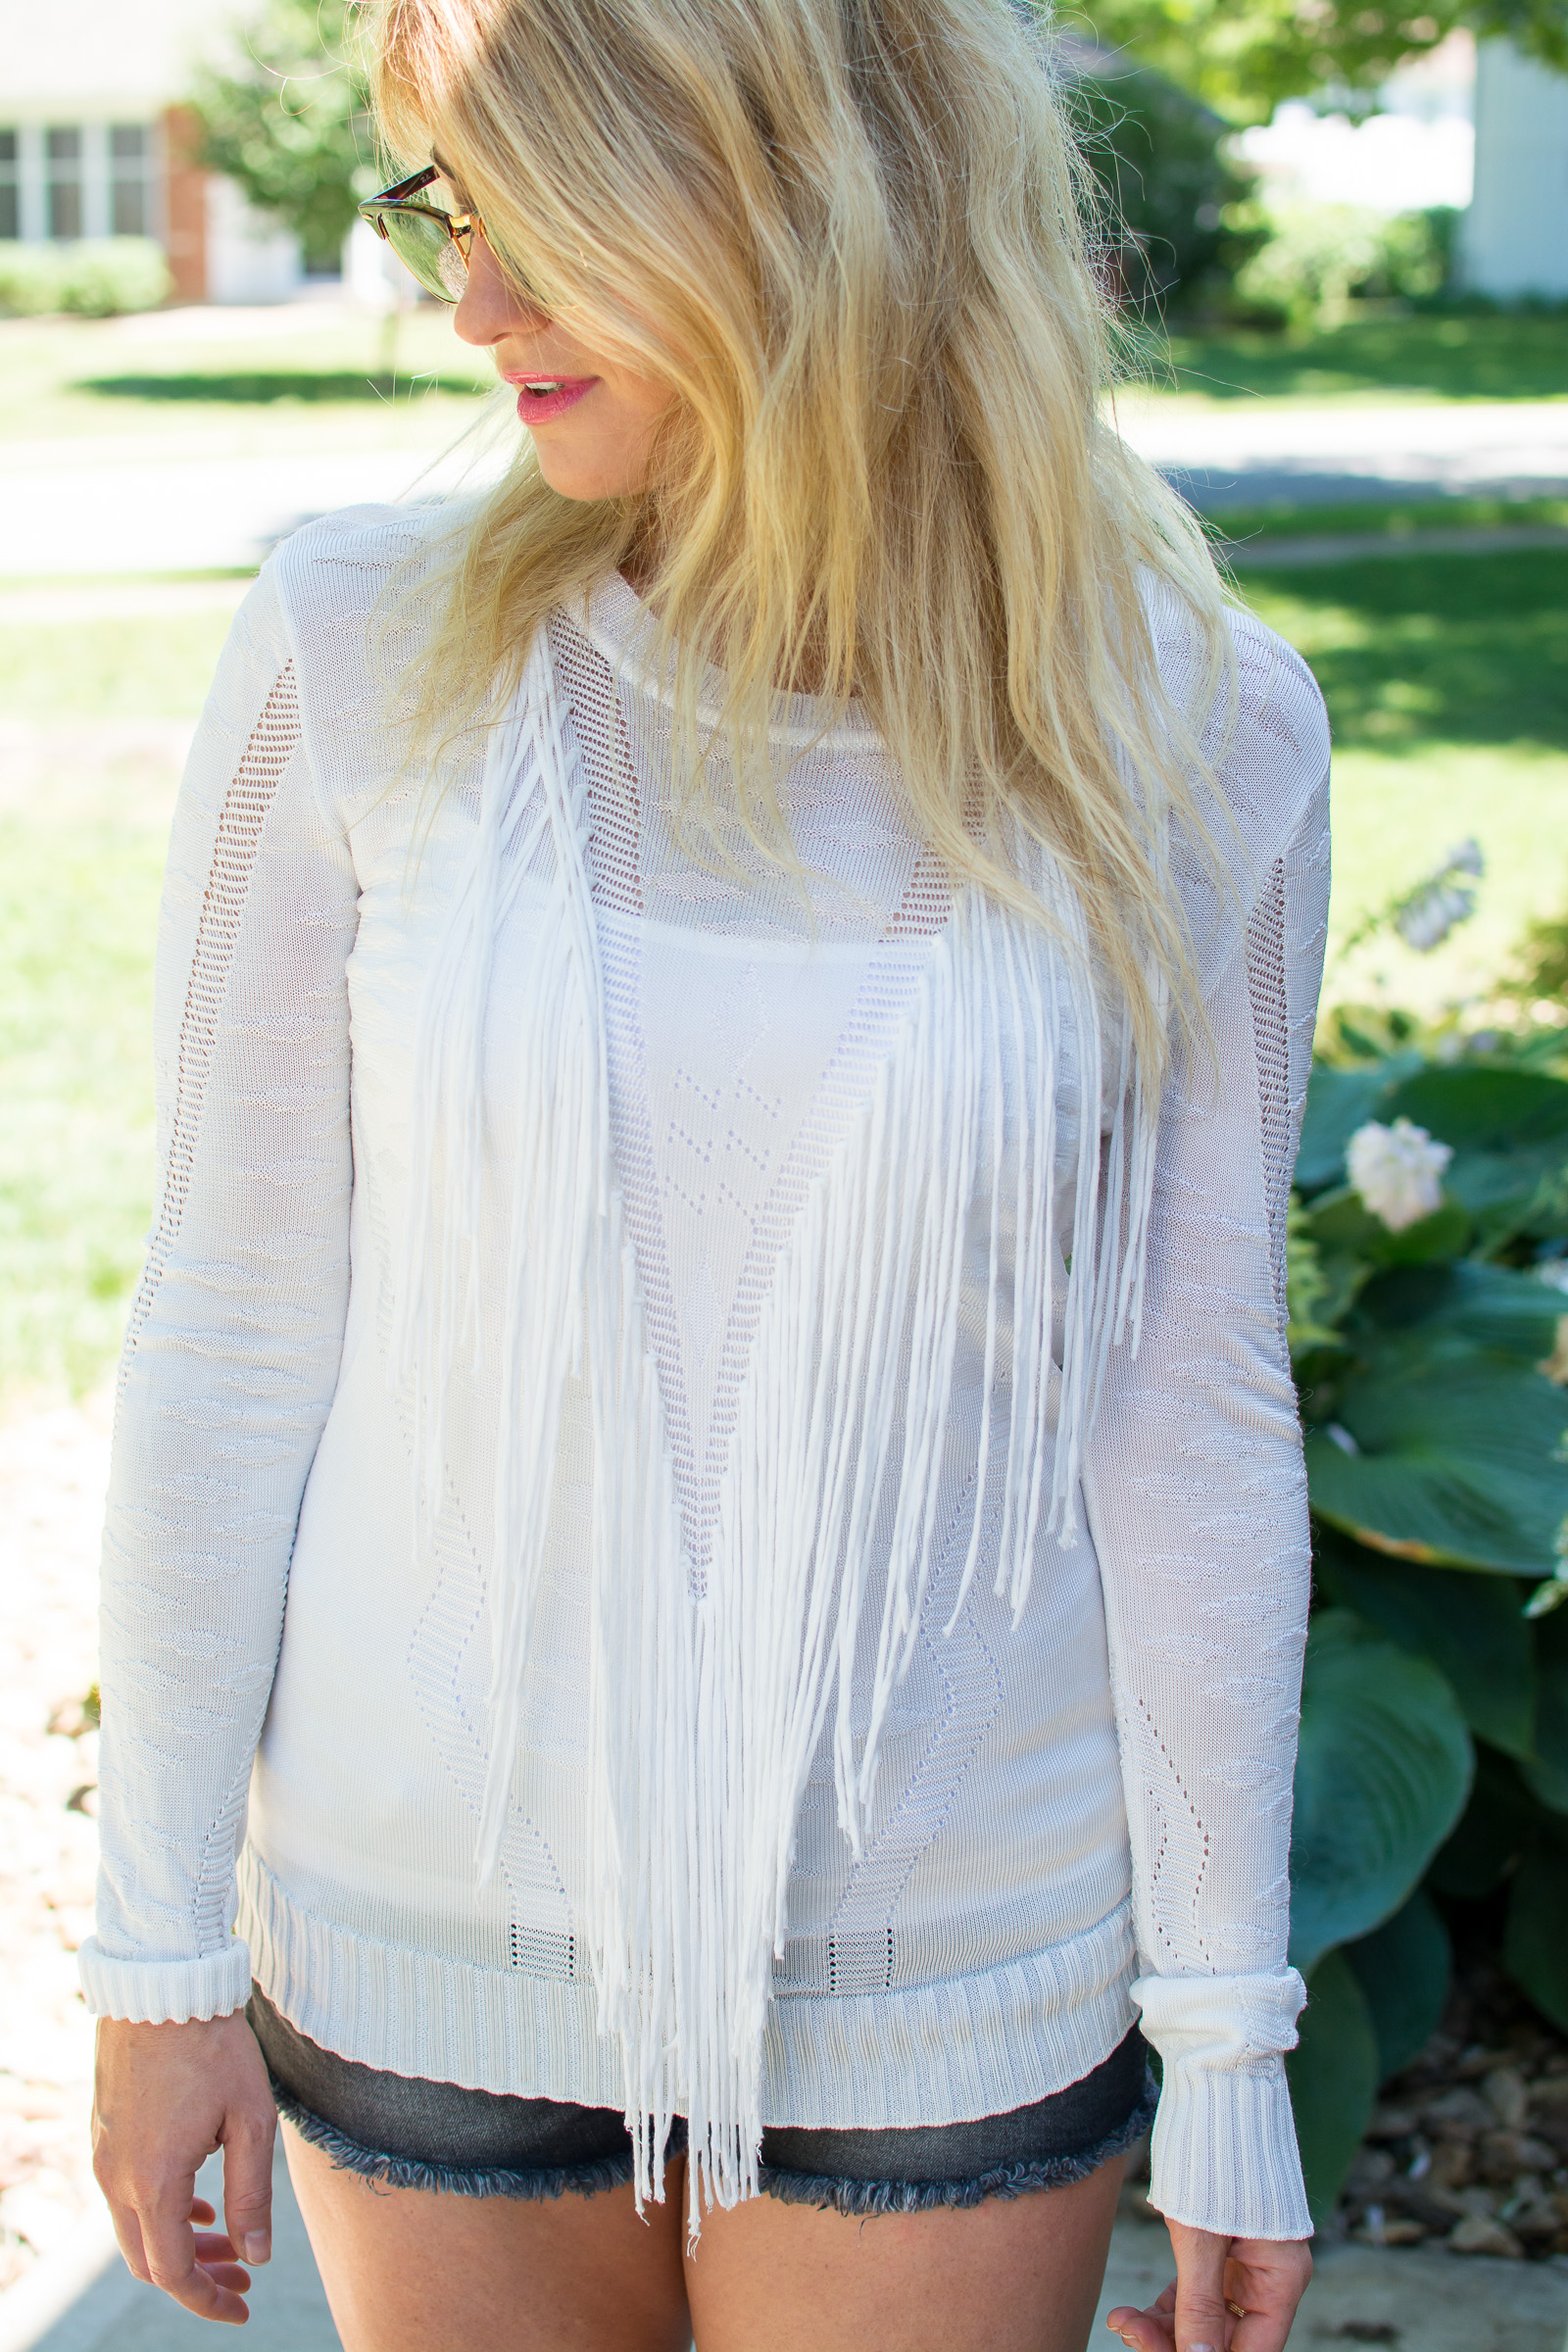 White Fringe Sweater for the Summer. | Ashley from Le Stylo Rouge